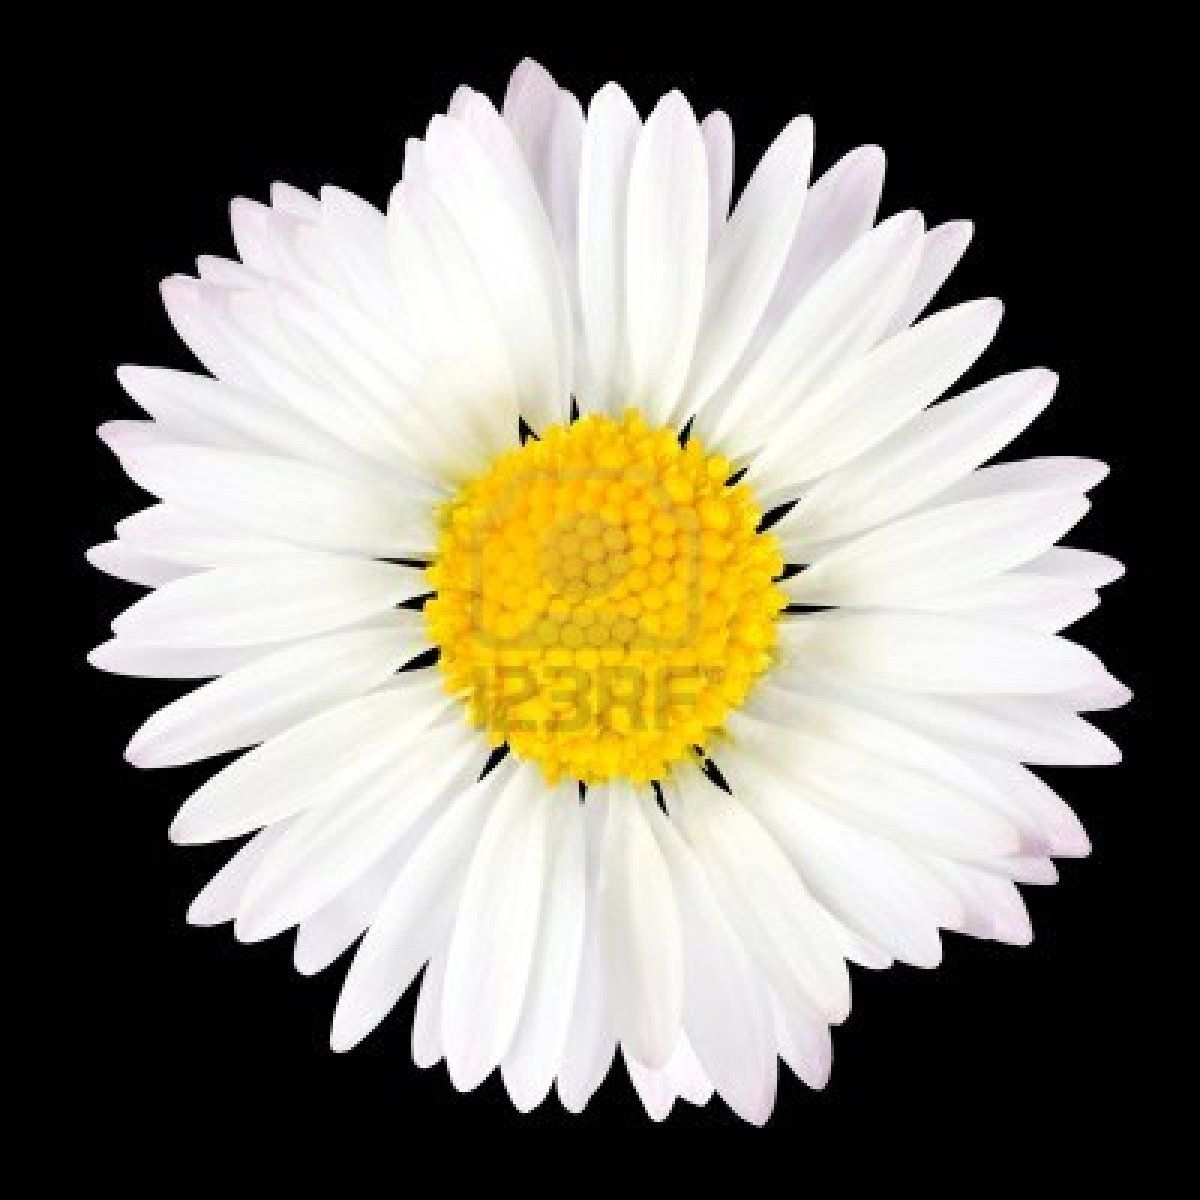 Daisy Flower Isolated On Black Background White With Yellow Dd